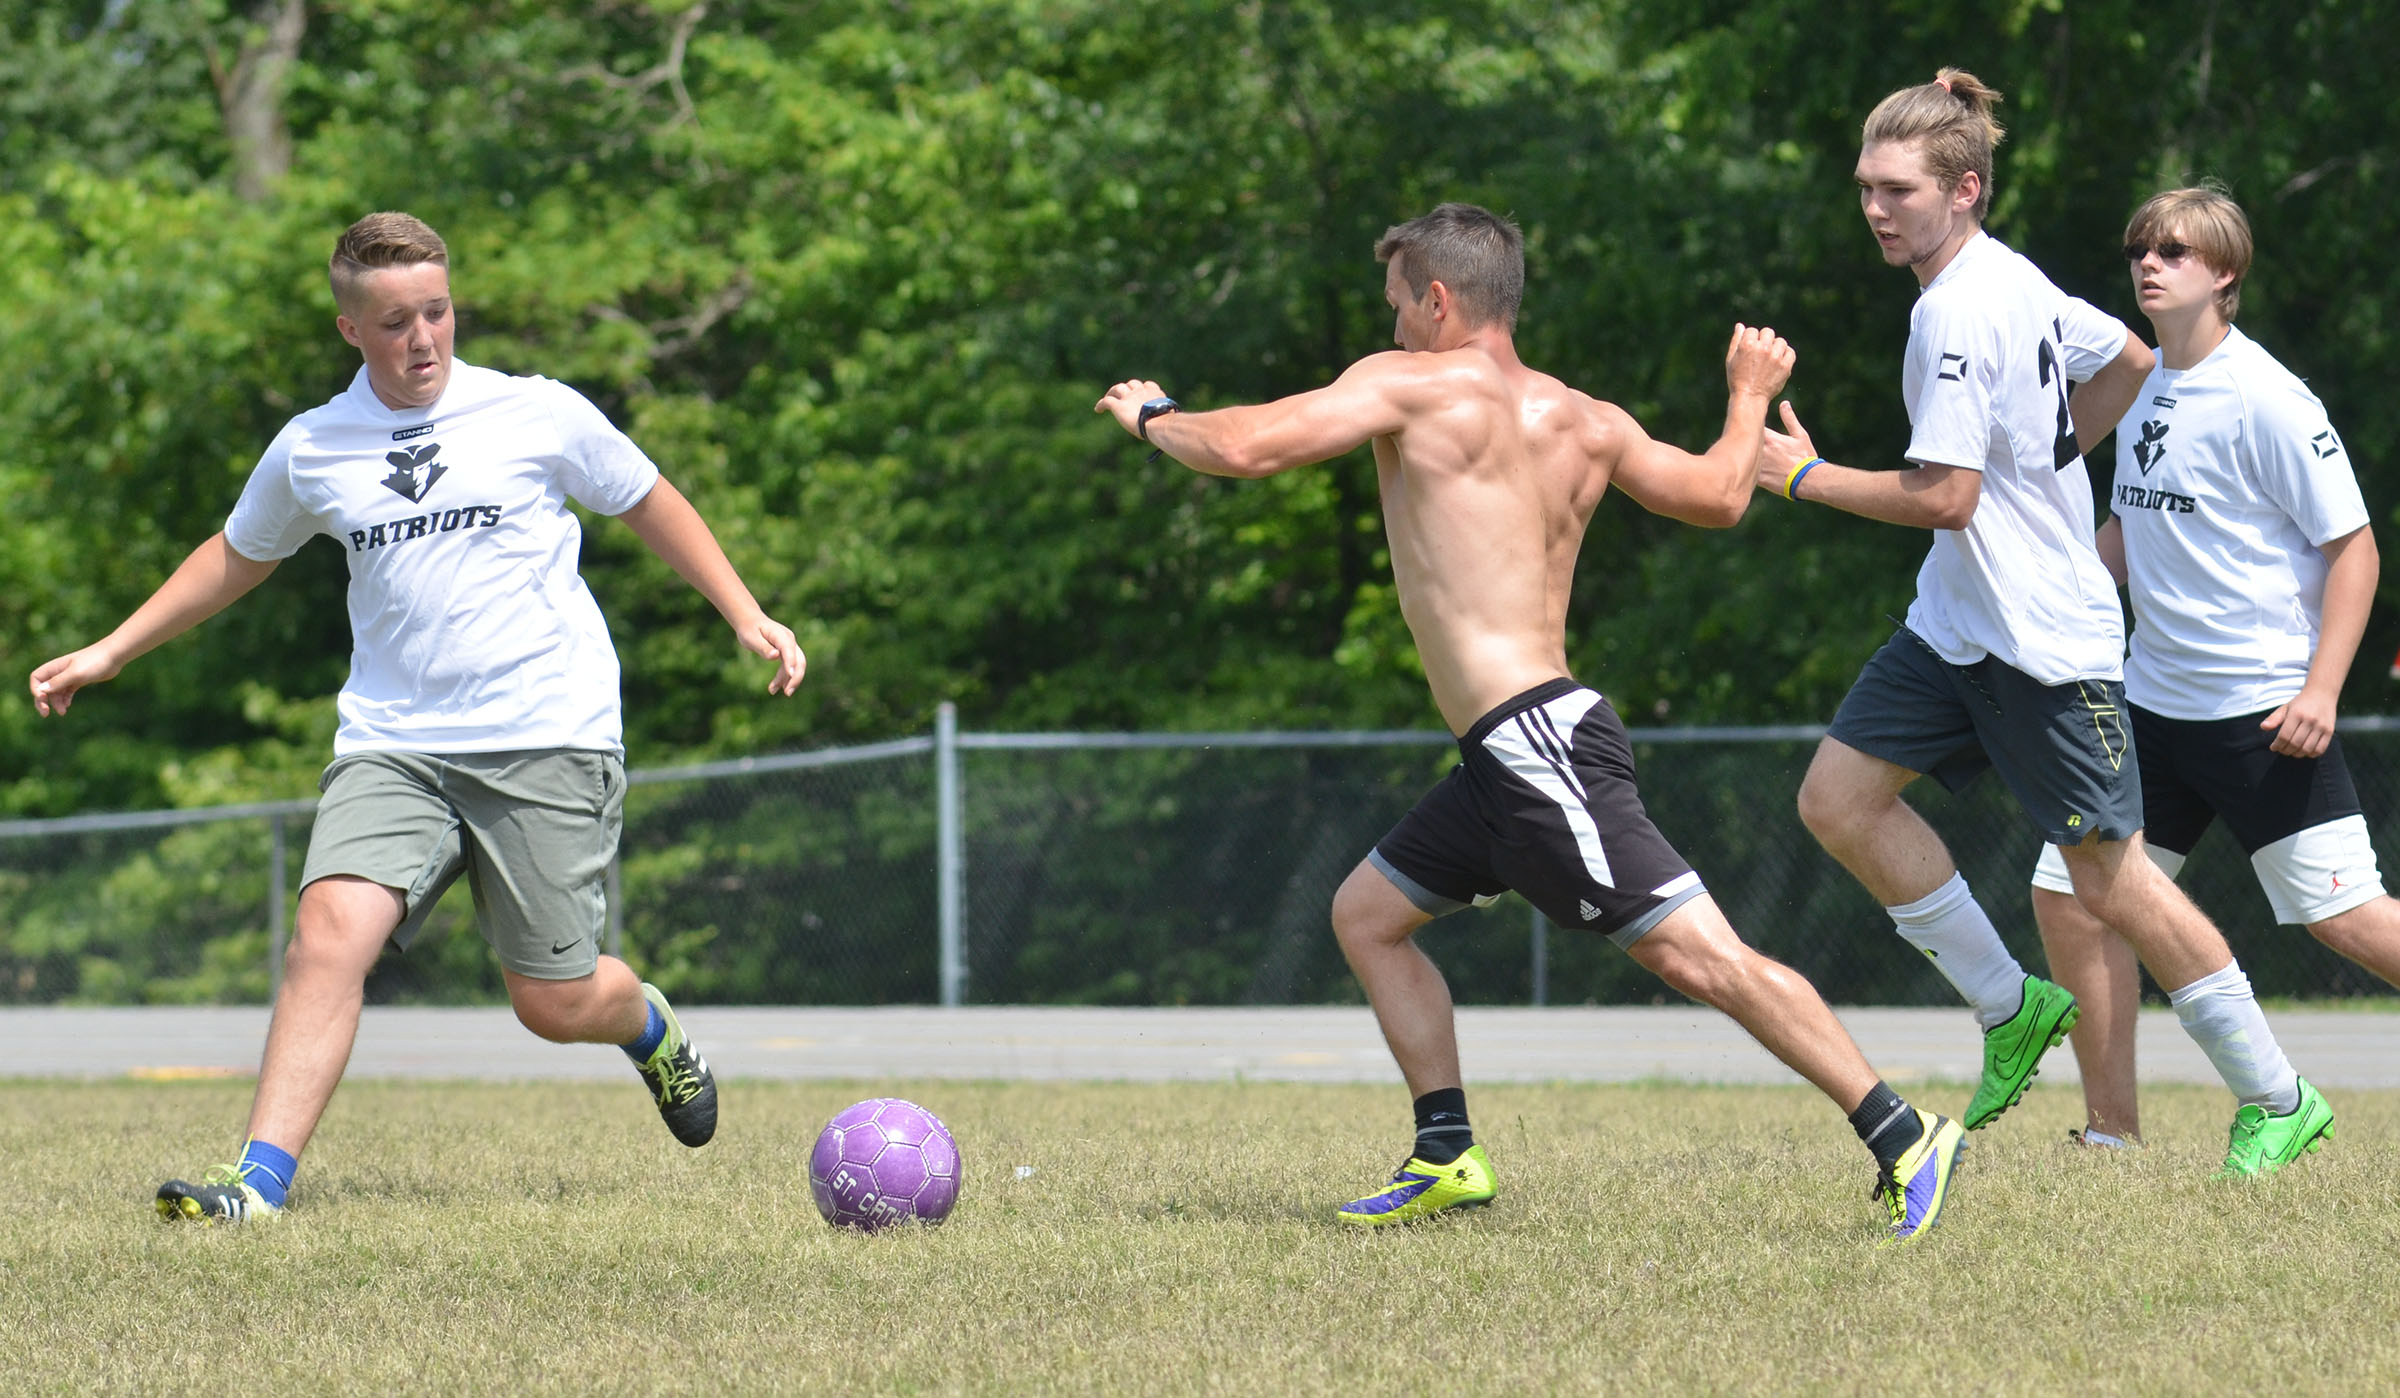 CHS soccer alumni player Drew Skaggs attempts to steal the ball from senior player Justin Richerson.